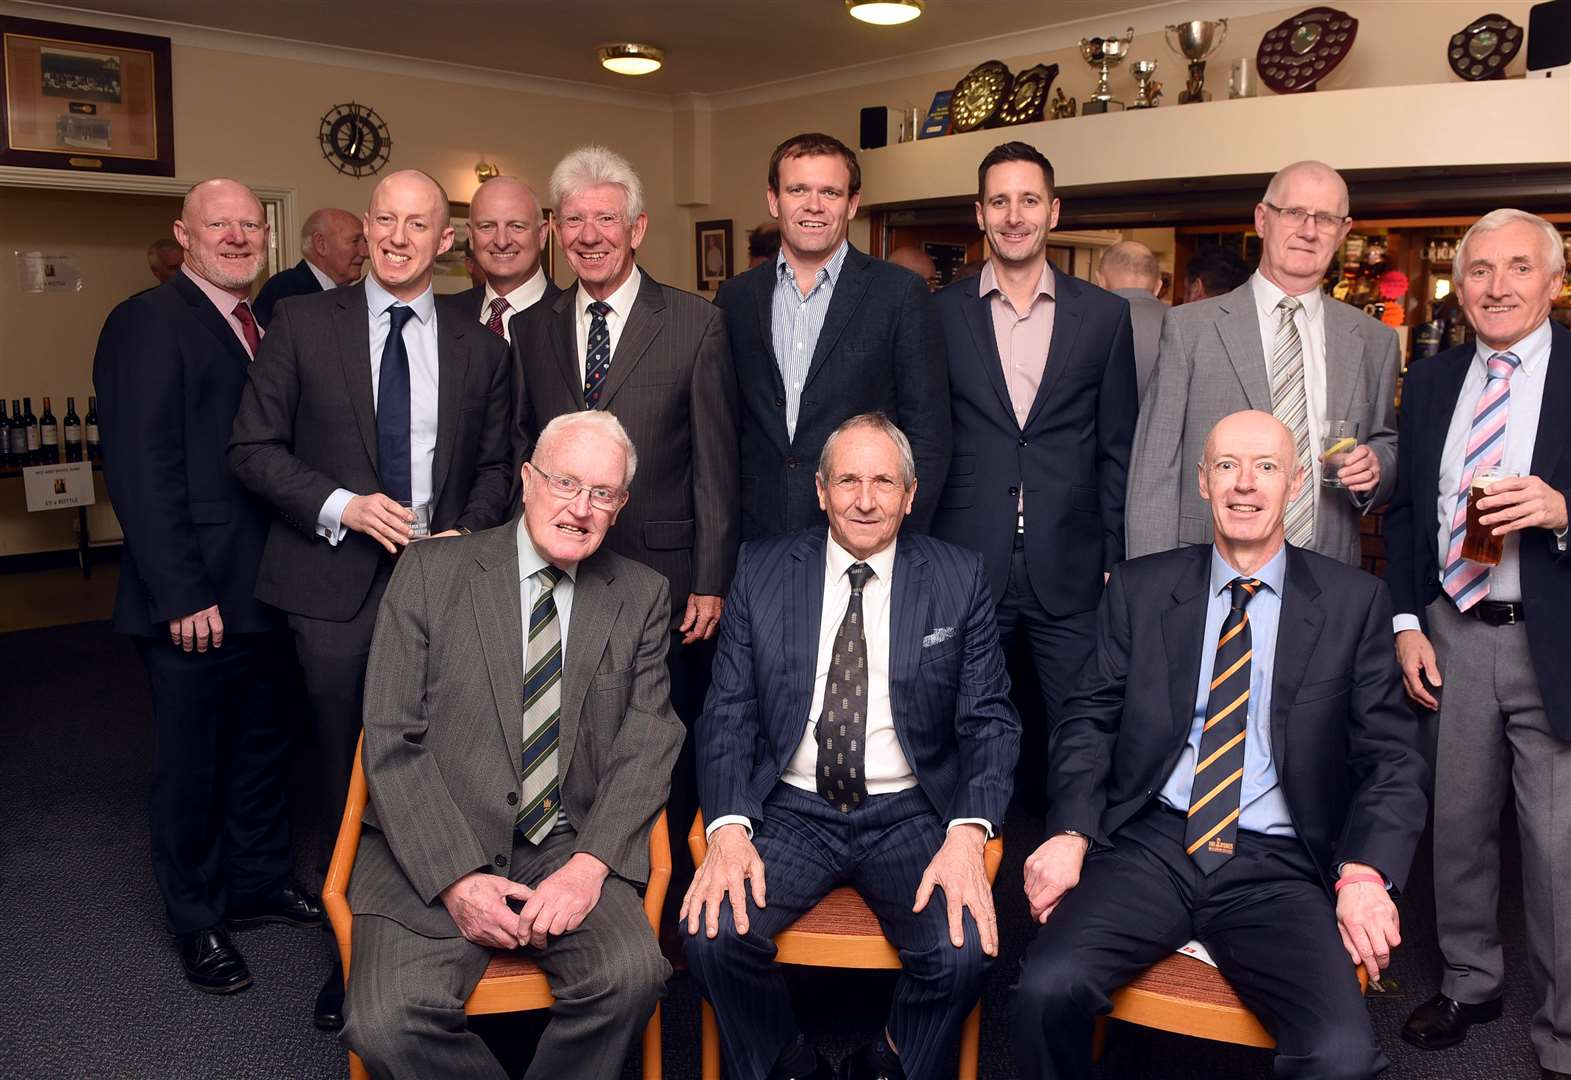 March Town Cricket Club hosts former England star Derek Randall as guest speaker at 33rd annual dinner